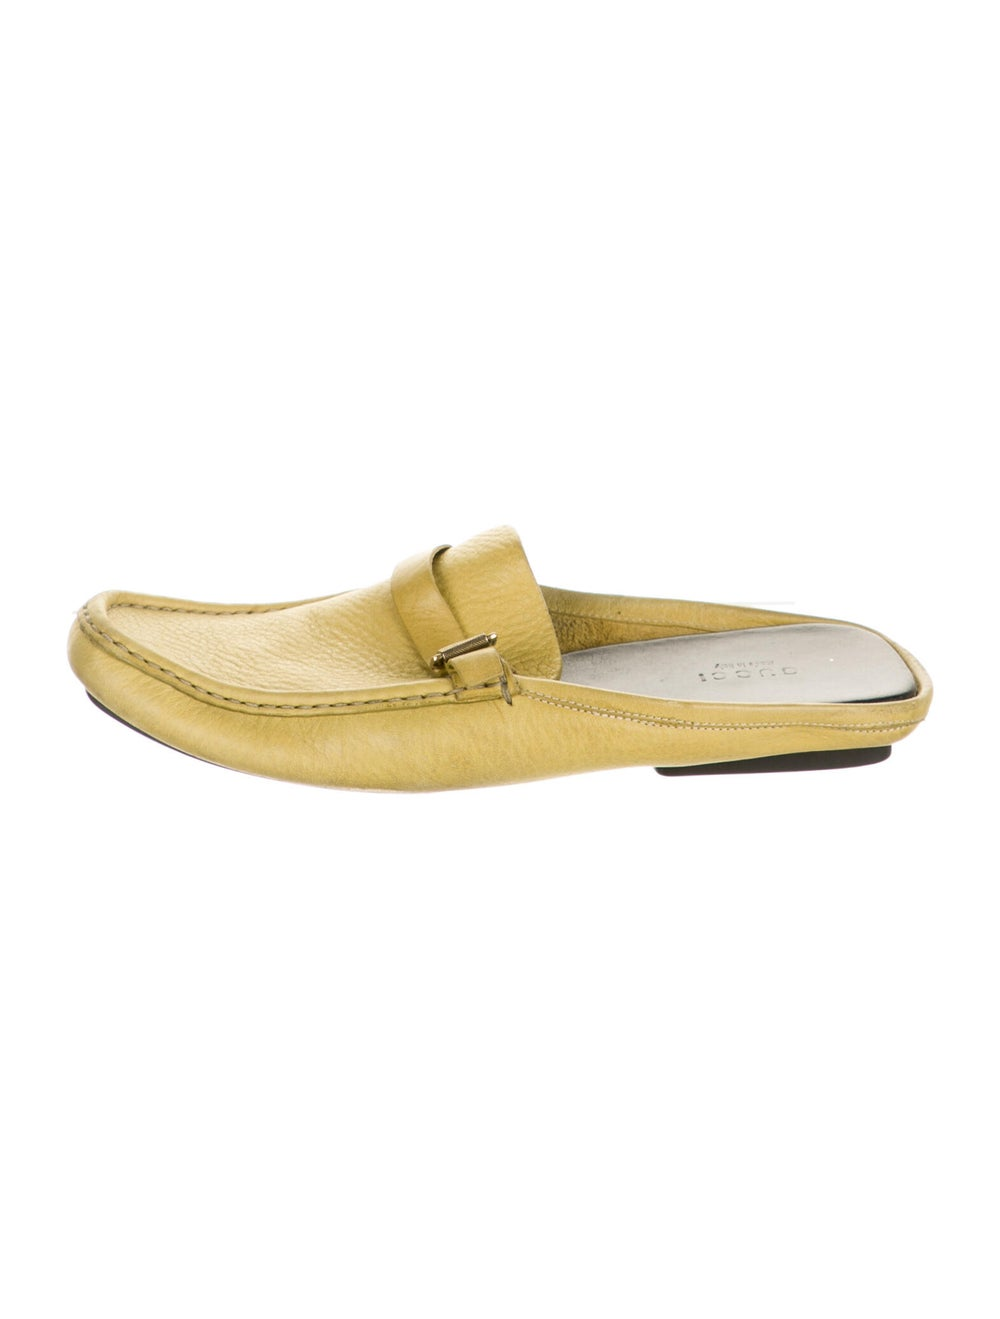 Gucci Leather Mules Yellow - image 1